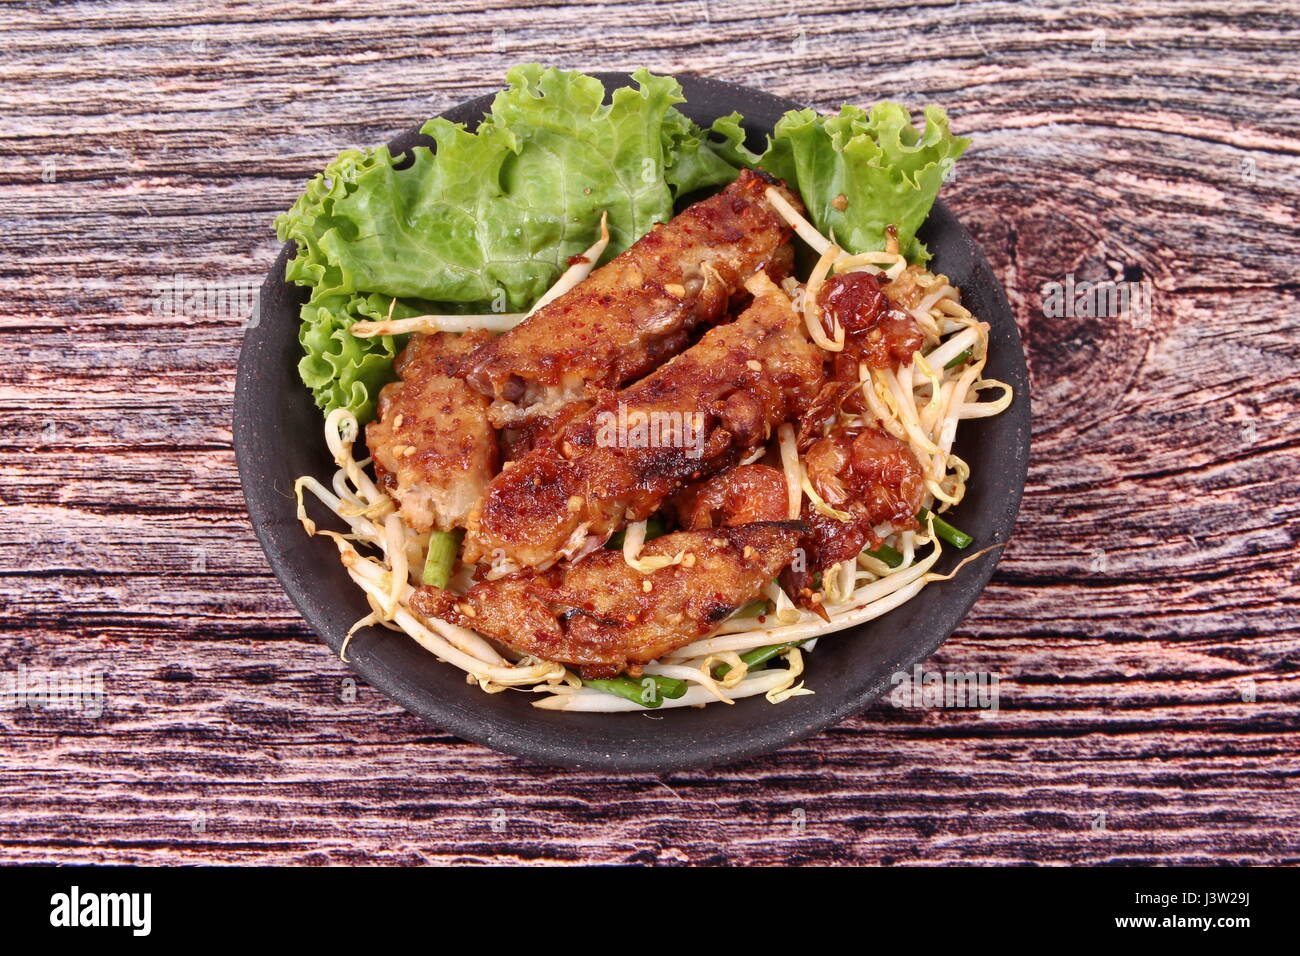 Chinese food ,Fried steamed grated radish with dried shrimp , shallot and bean sprouts call Khanom Phak Kad in Thai - Stock Image